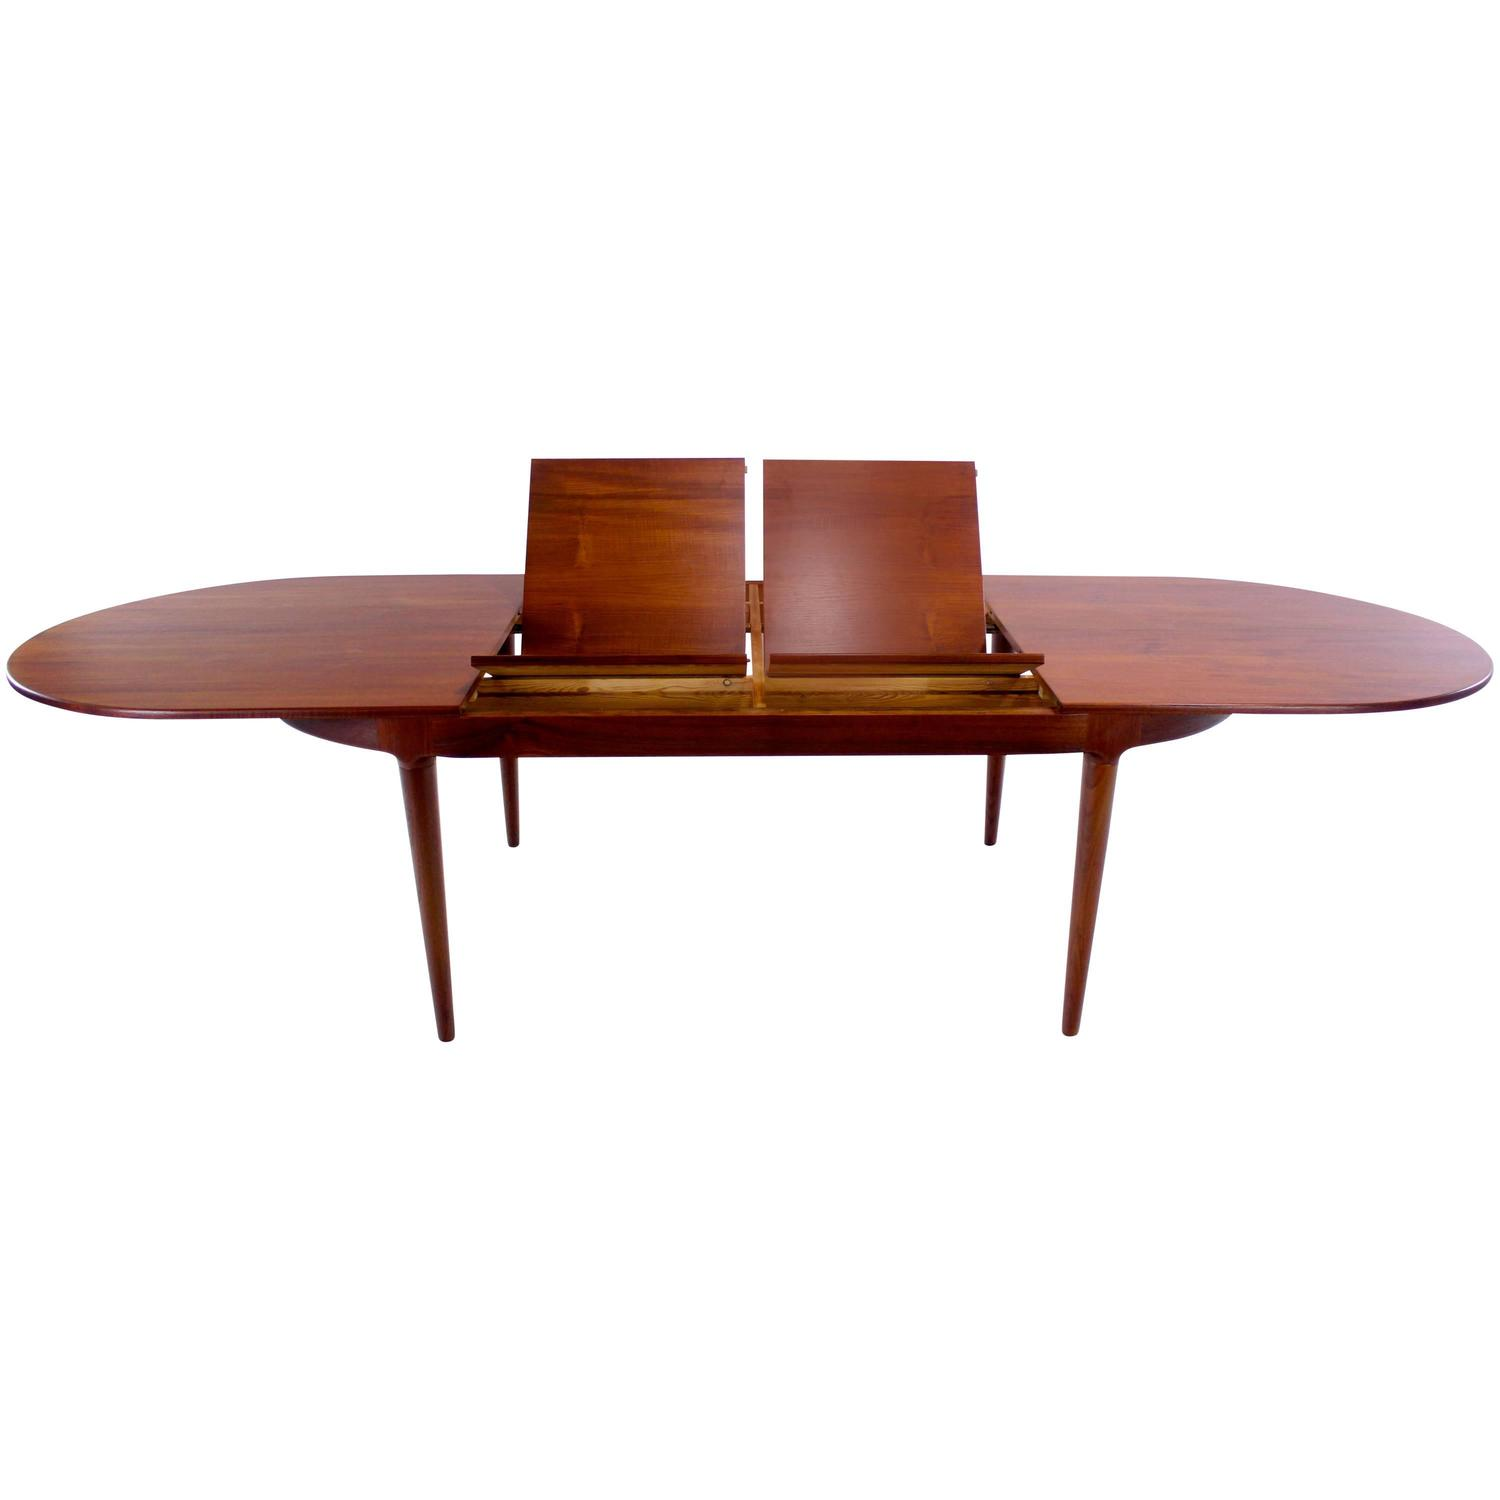 danish modern oval butterfly leaf teak dining table by arne hovmand